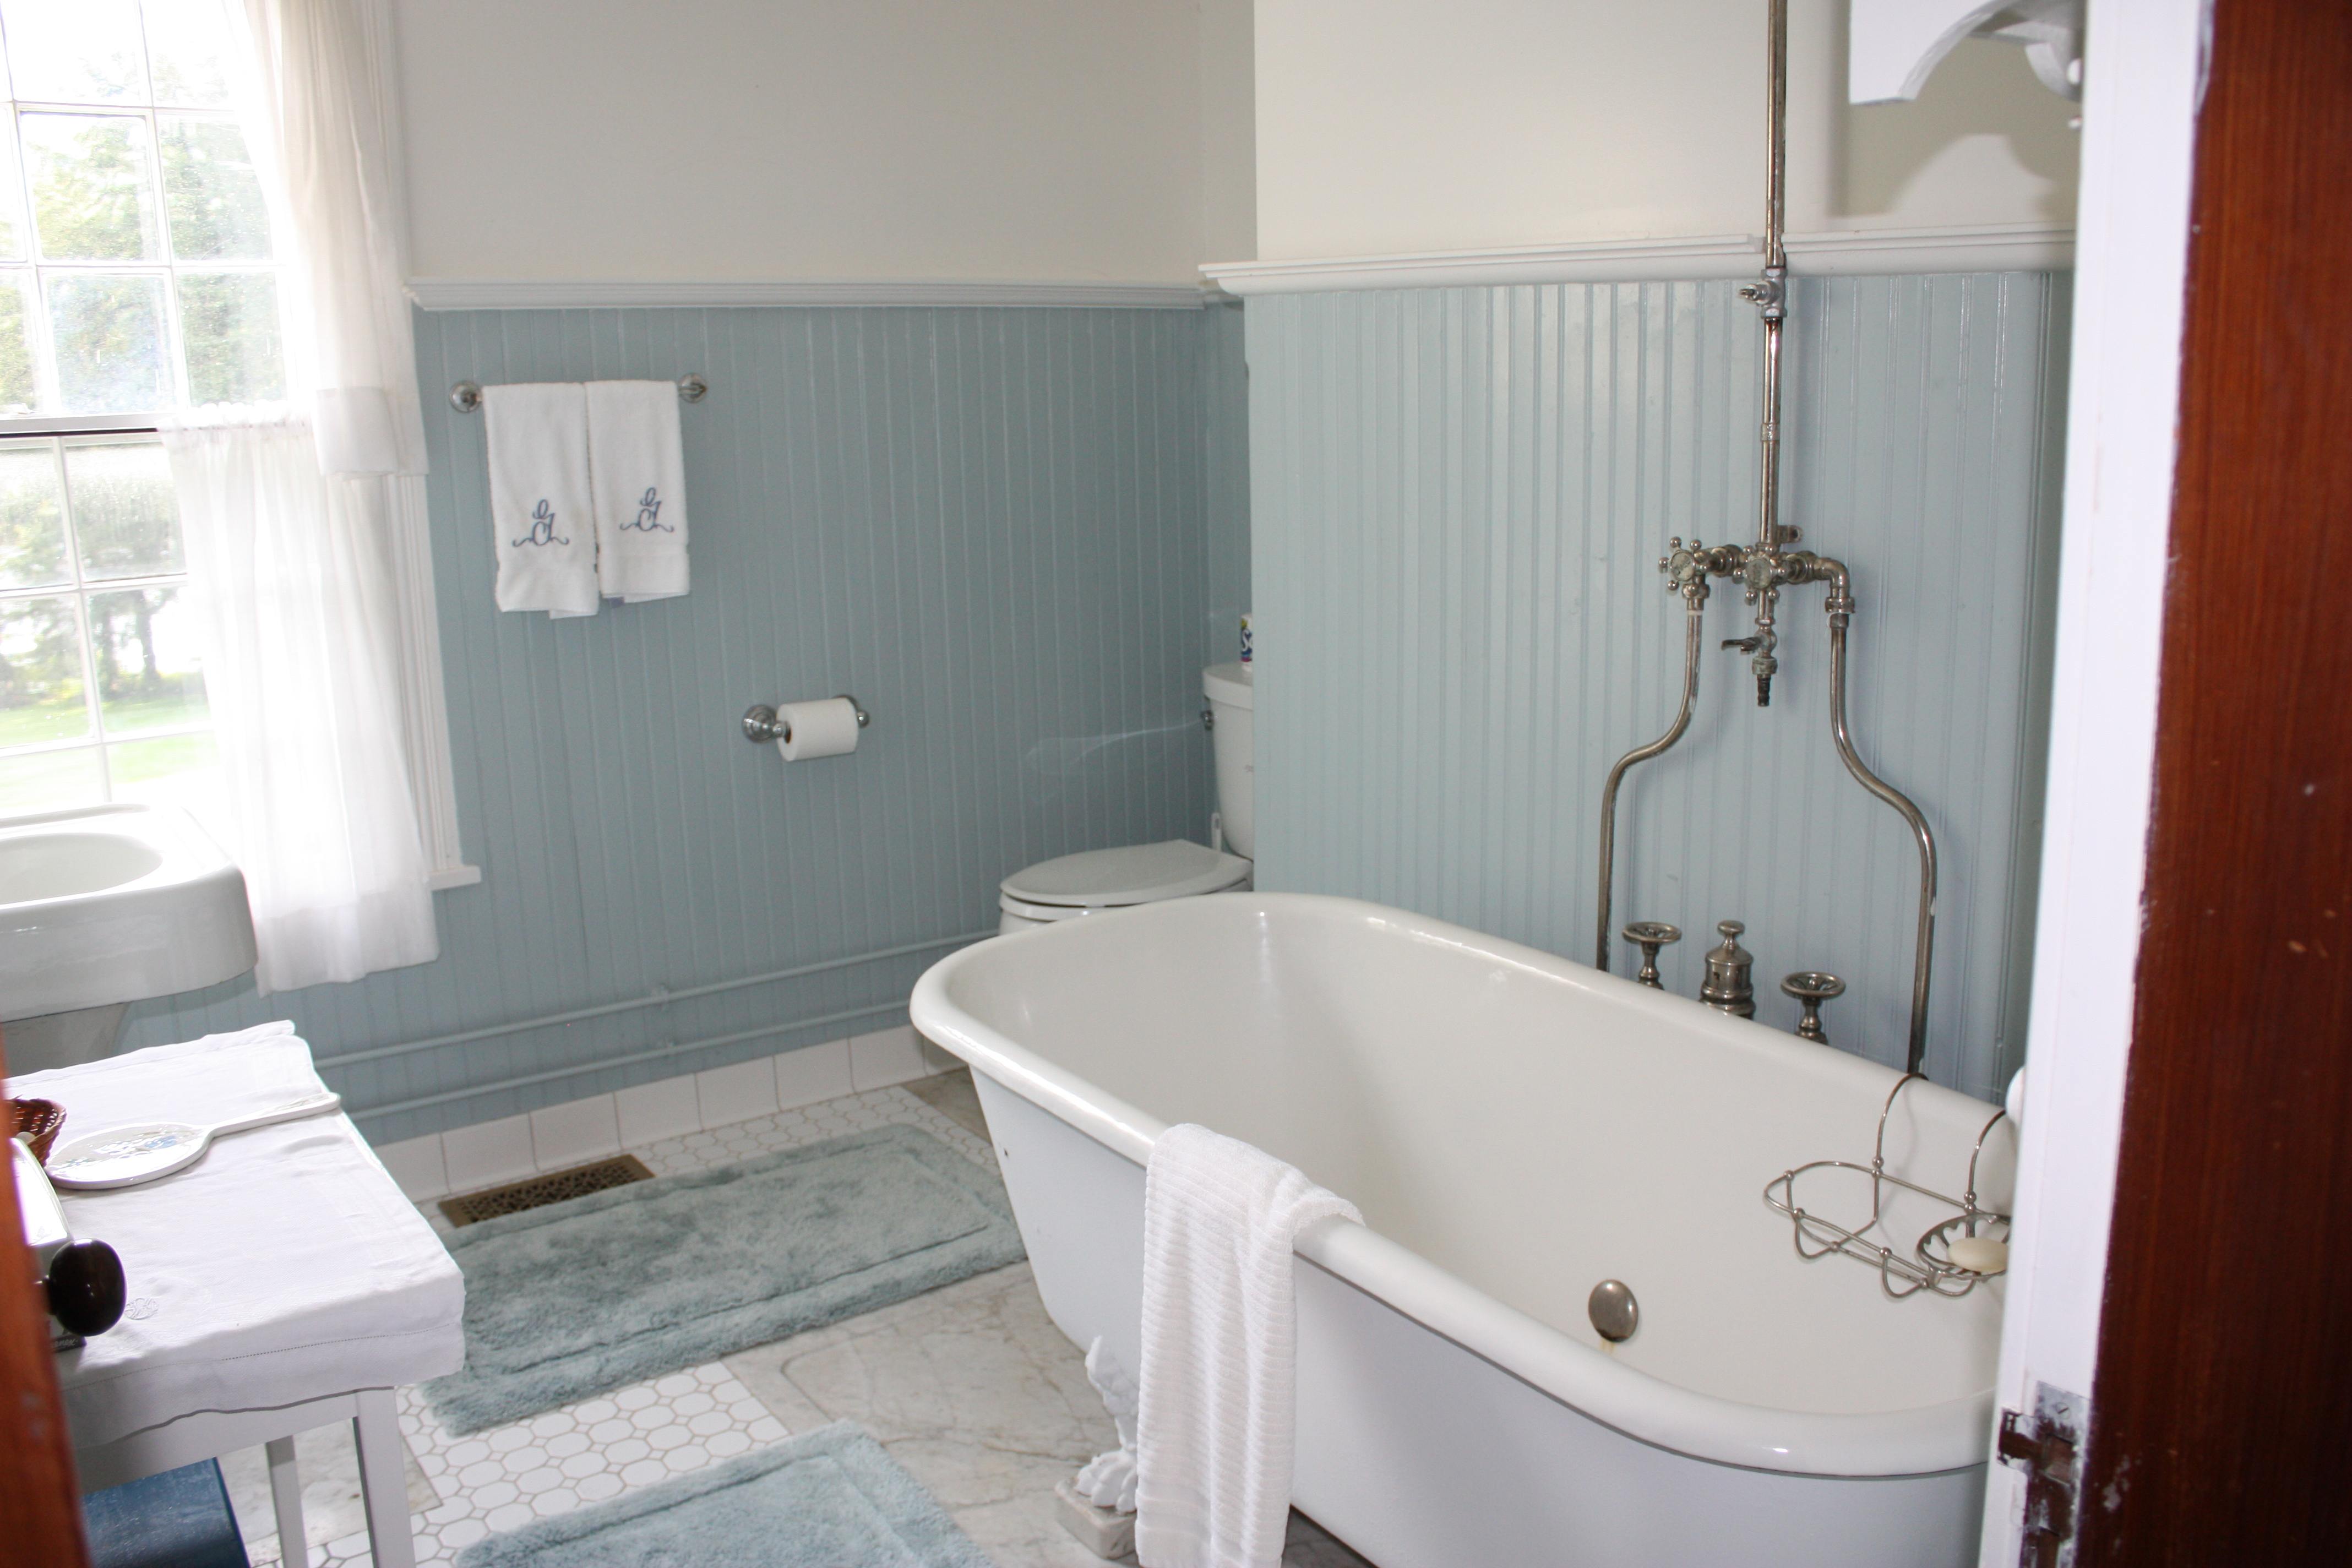 ideas-bathroom-charming-blue-ceramic-wall-tile-also-freestanding-tub-and-wall-towel-bar-as-decorate-small-space-vintage-bathrooms-ideas-admirable-vintage-bathrooms-assorted-styles-and-inspirations